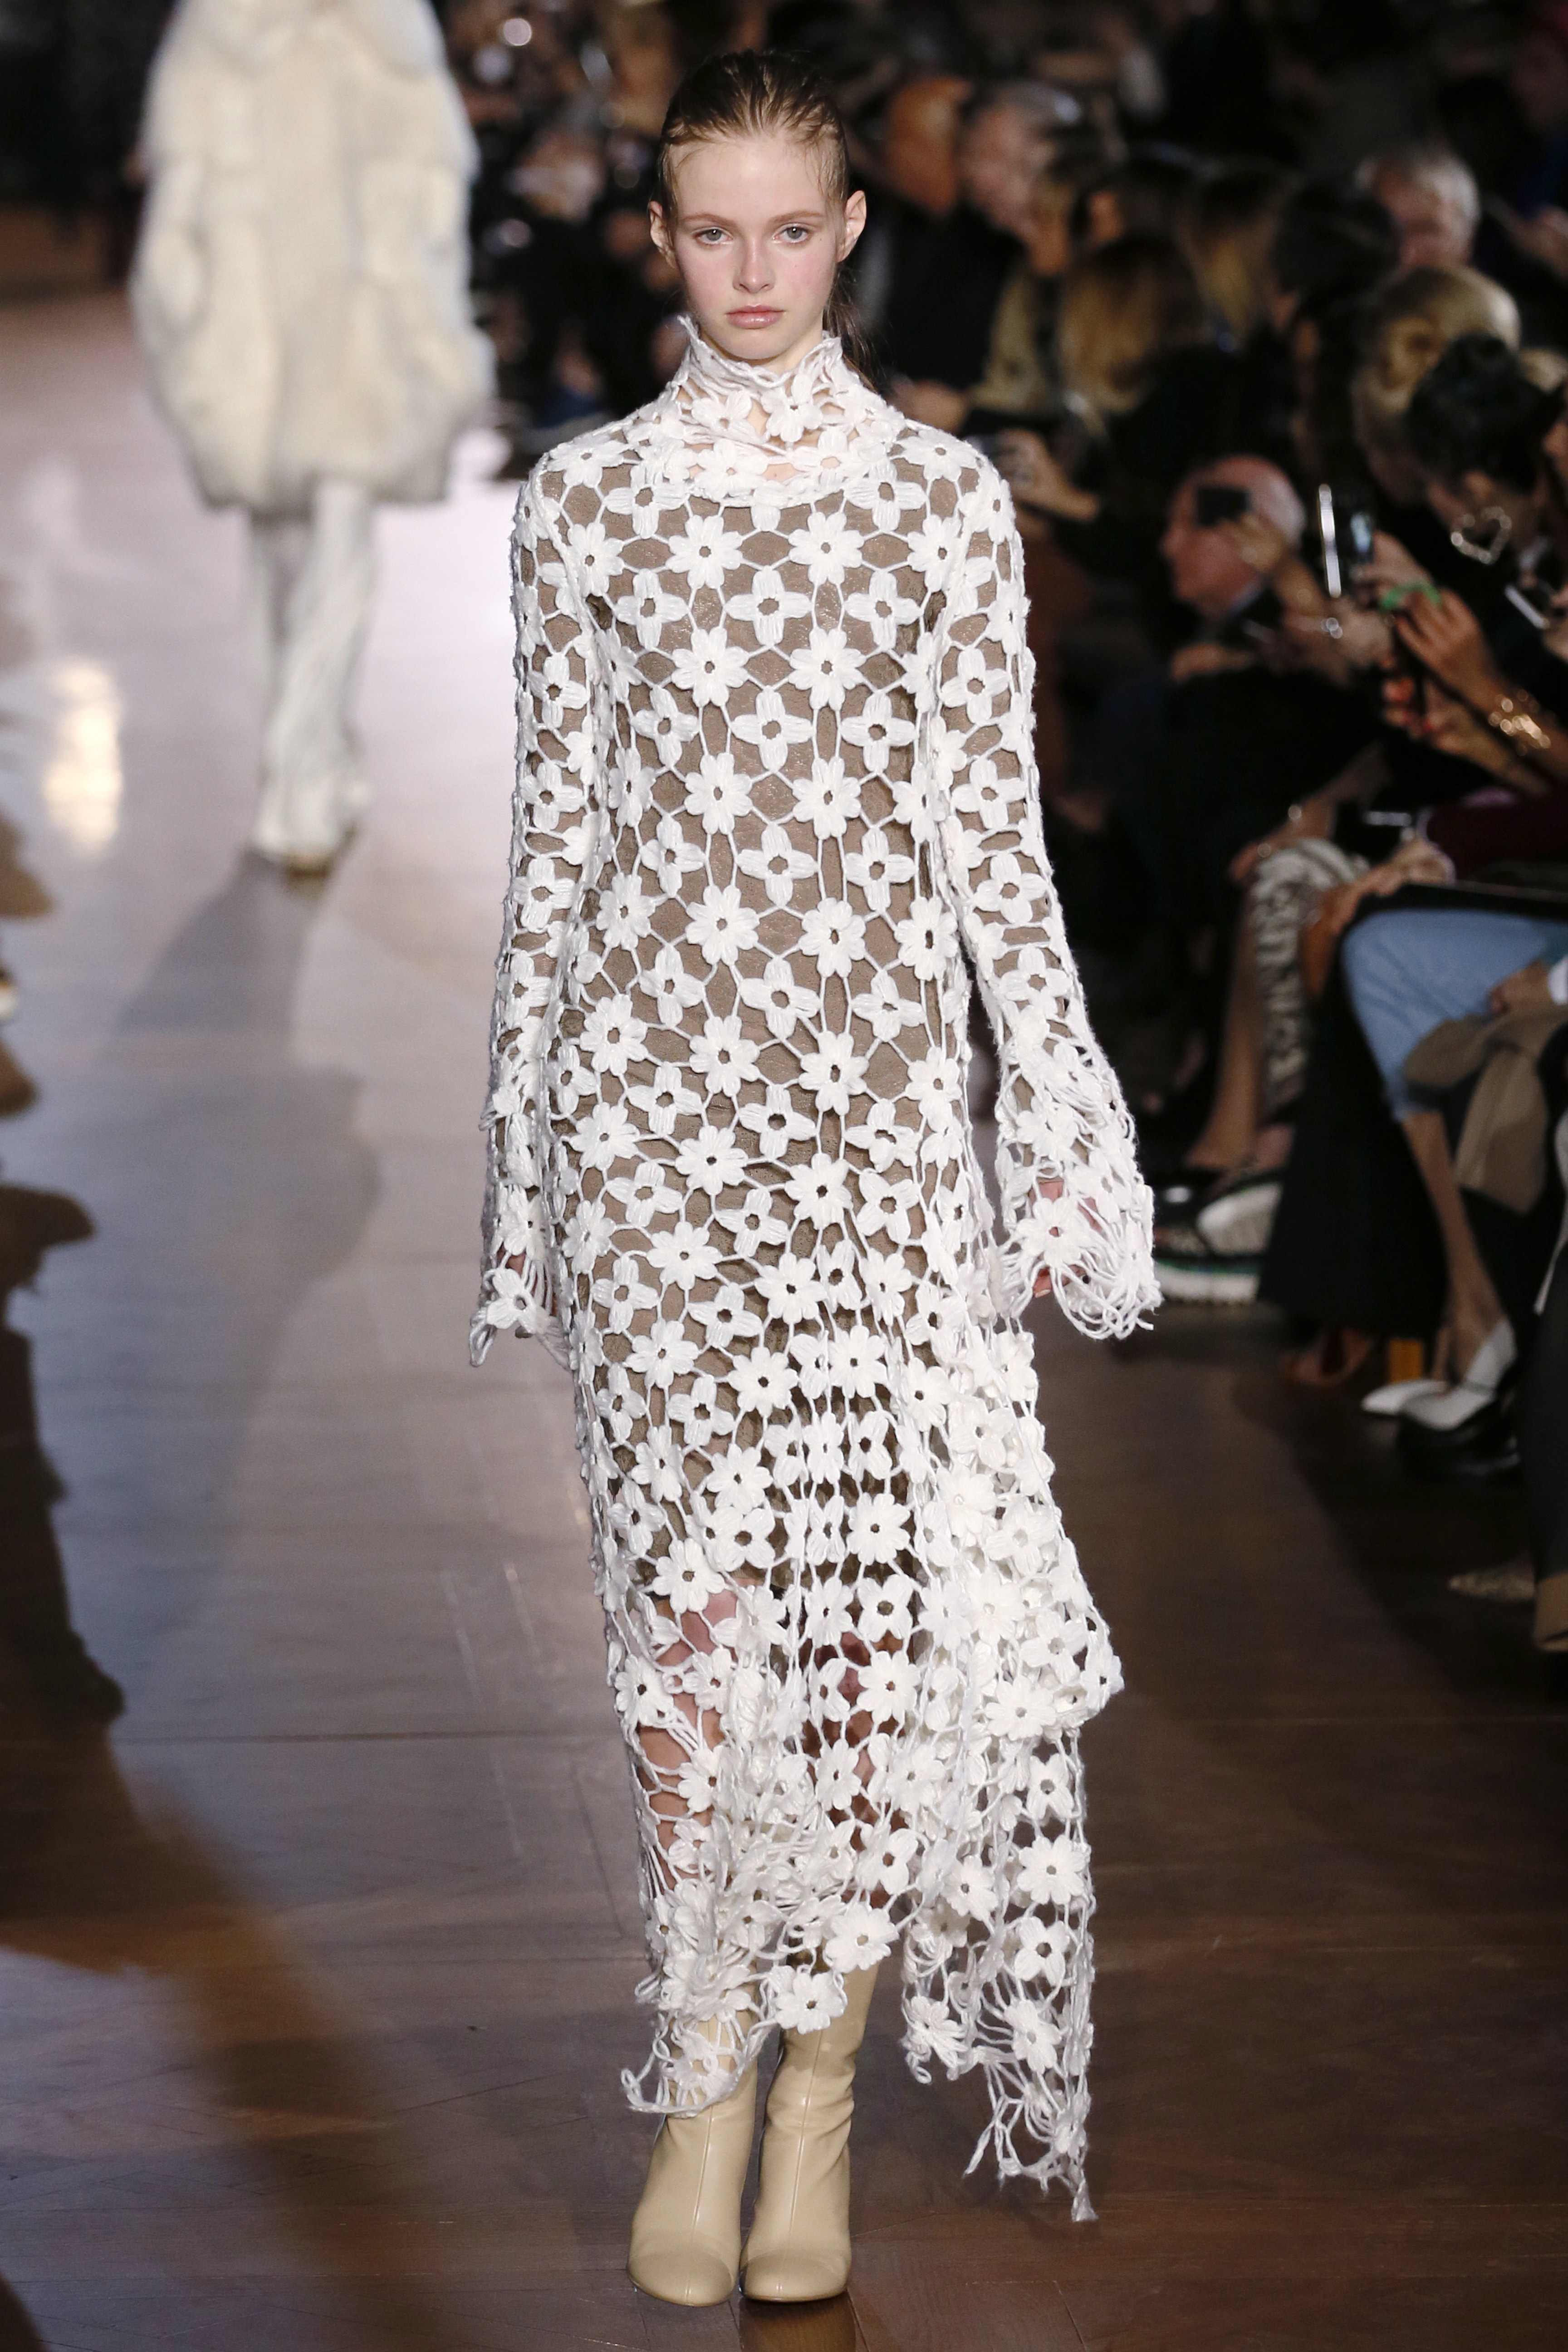 The collection also embraced the '70s trend seen on so many runways this season (Photo: Getty).